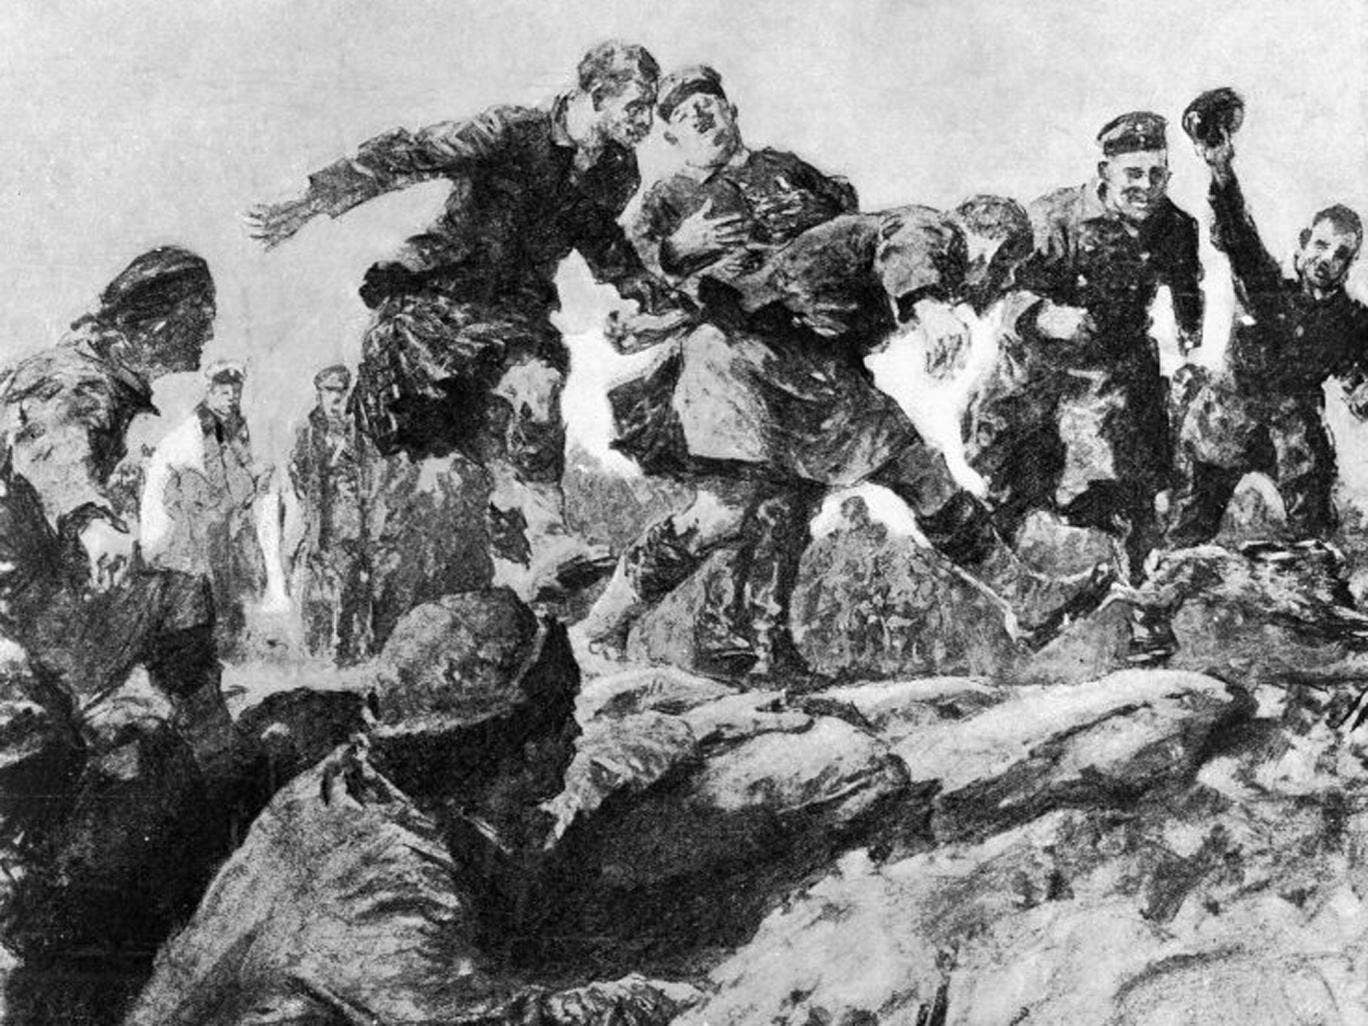 Yuletide truce: The unofficial 1914 ceasefire when British and German soldiers came out of their trenches to play football and sing carols